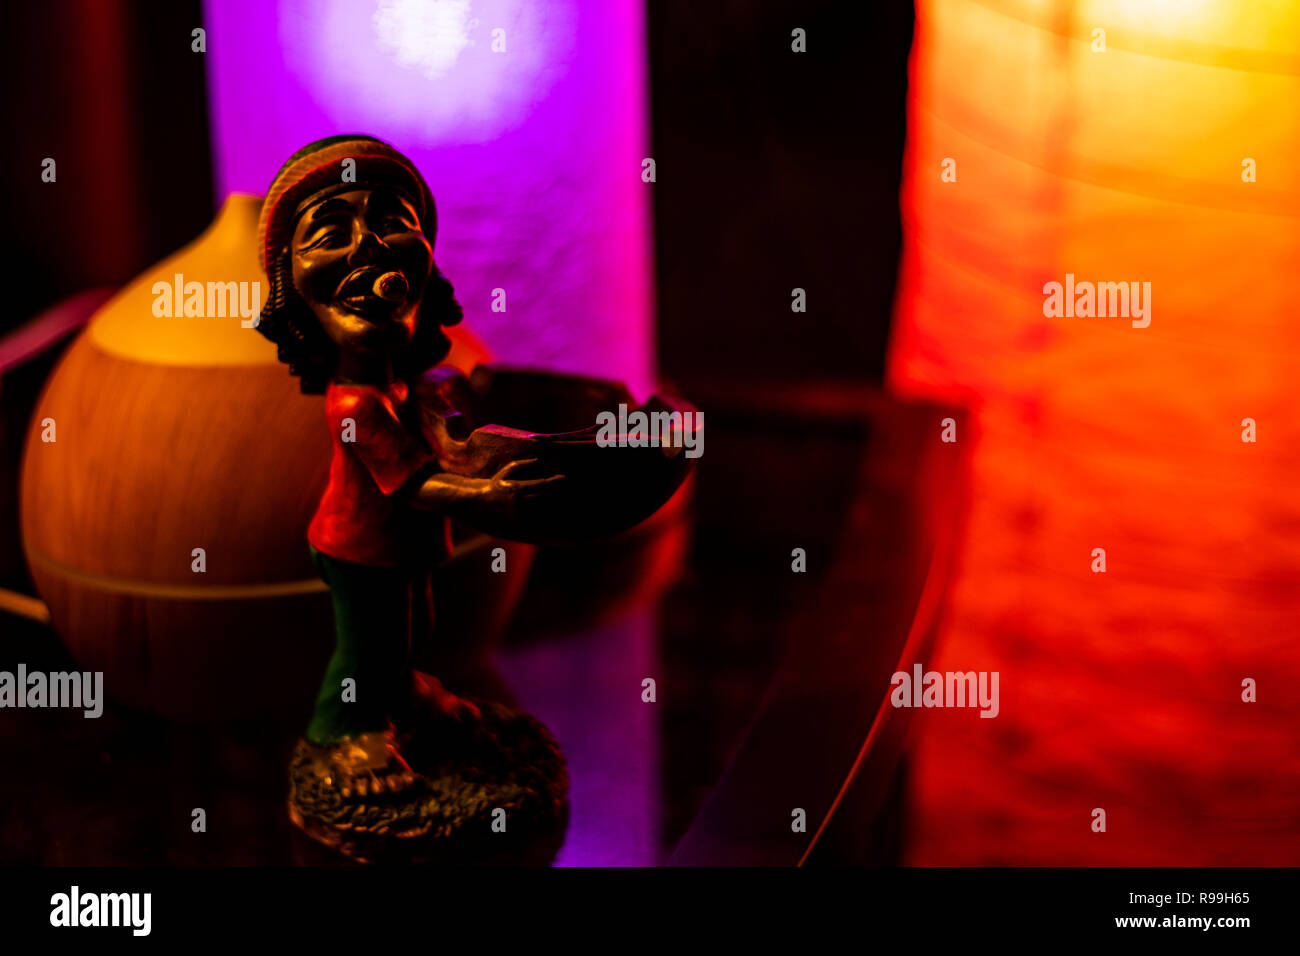 Bob Marley figurine on reflective glass desk by an oil diffuser lit by 2 led lamps. - Stock Image